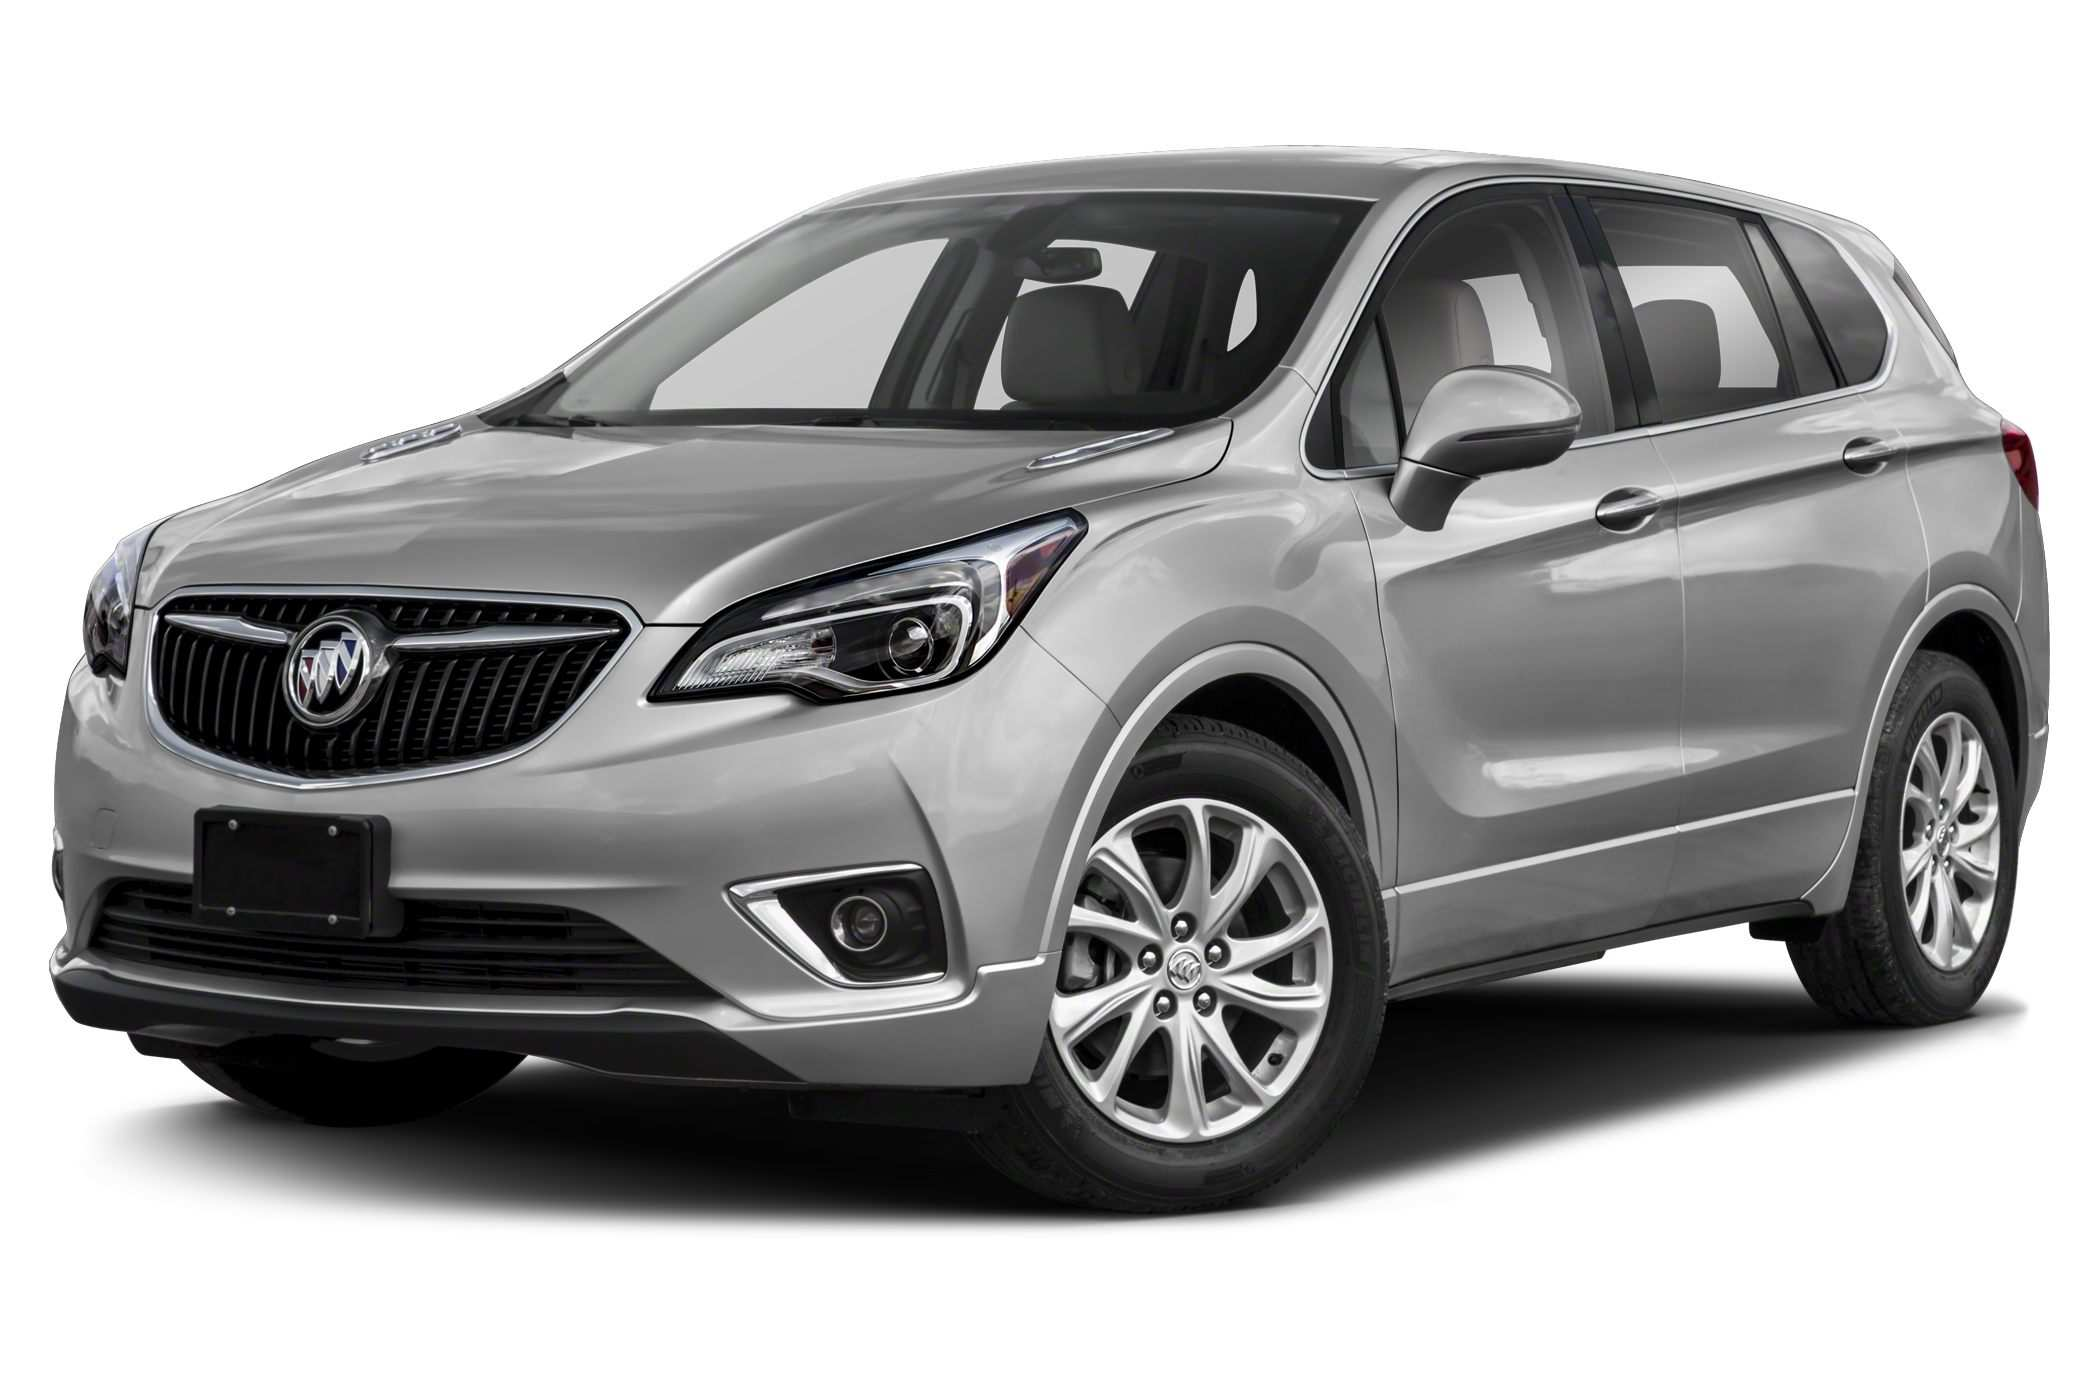 61 The 2020 Buick Envision Reviews Photos for 2020 Buick Envision Reviews